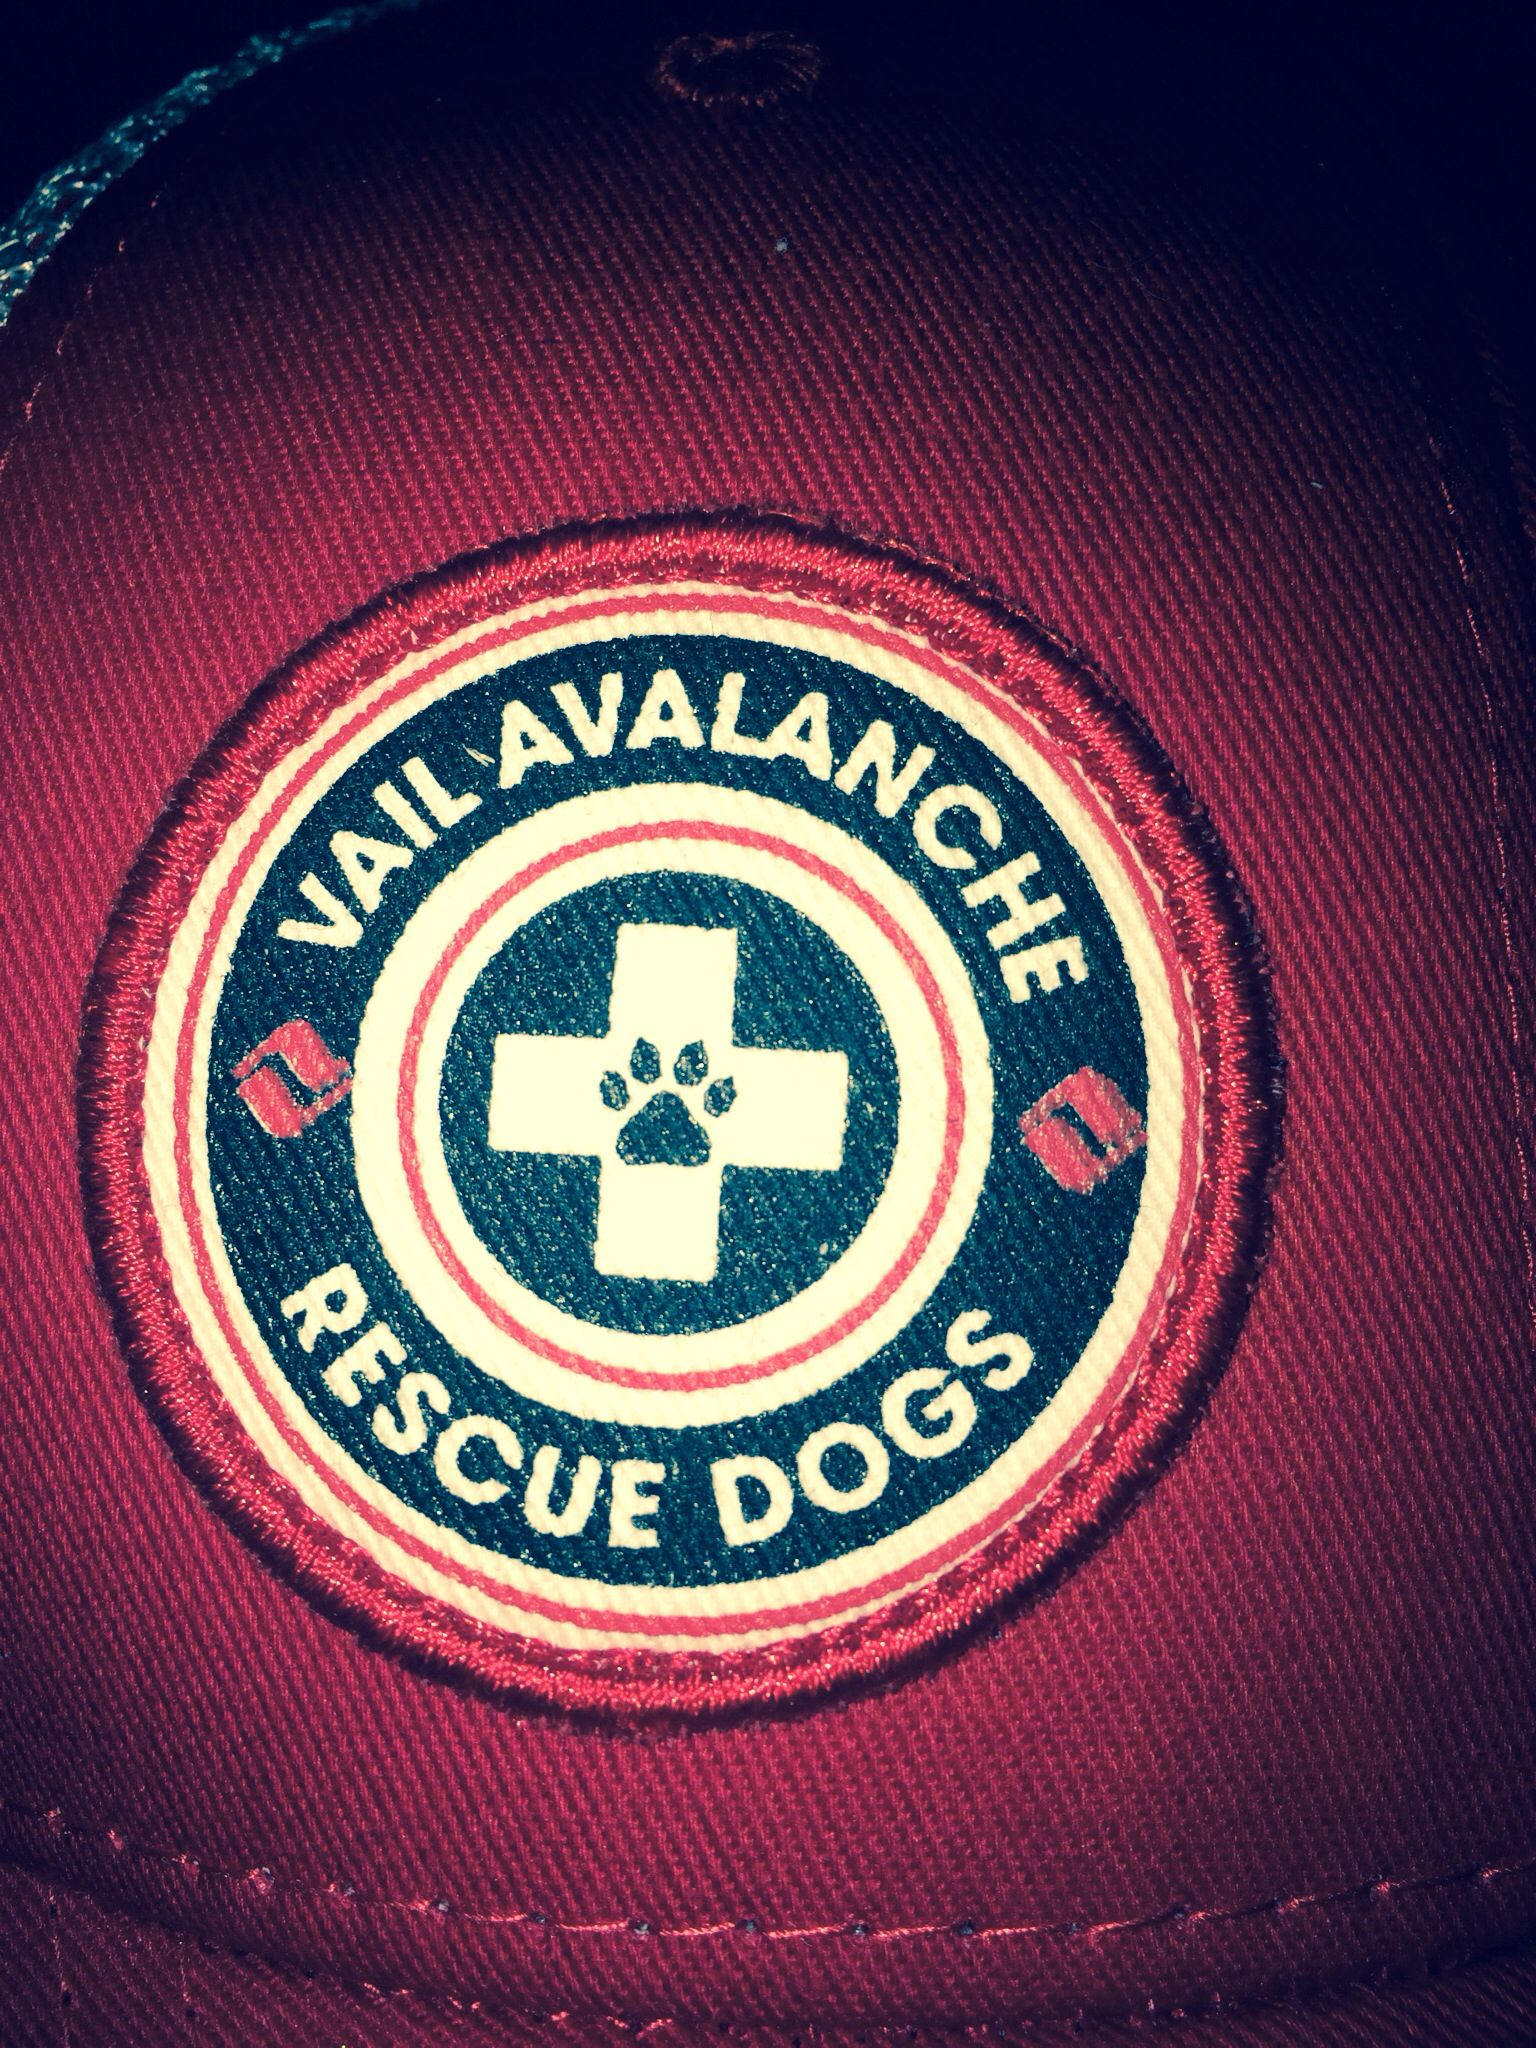 Love this logo from vail avalanche rescue dogs trademarks love this logo from vail avalanche rescue dogs buycottarizona Image collections